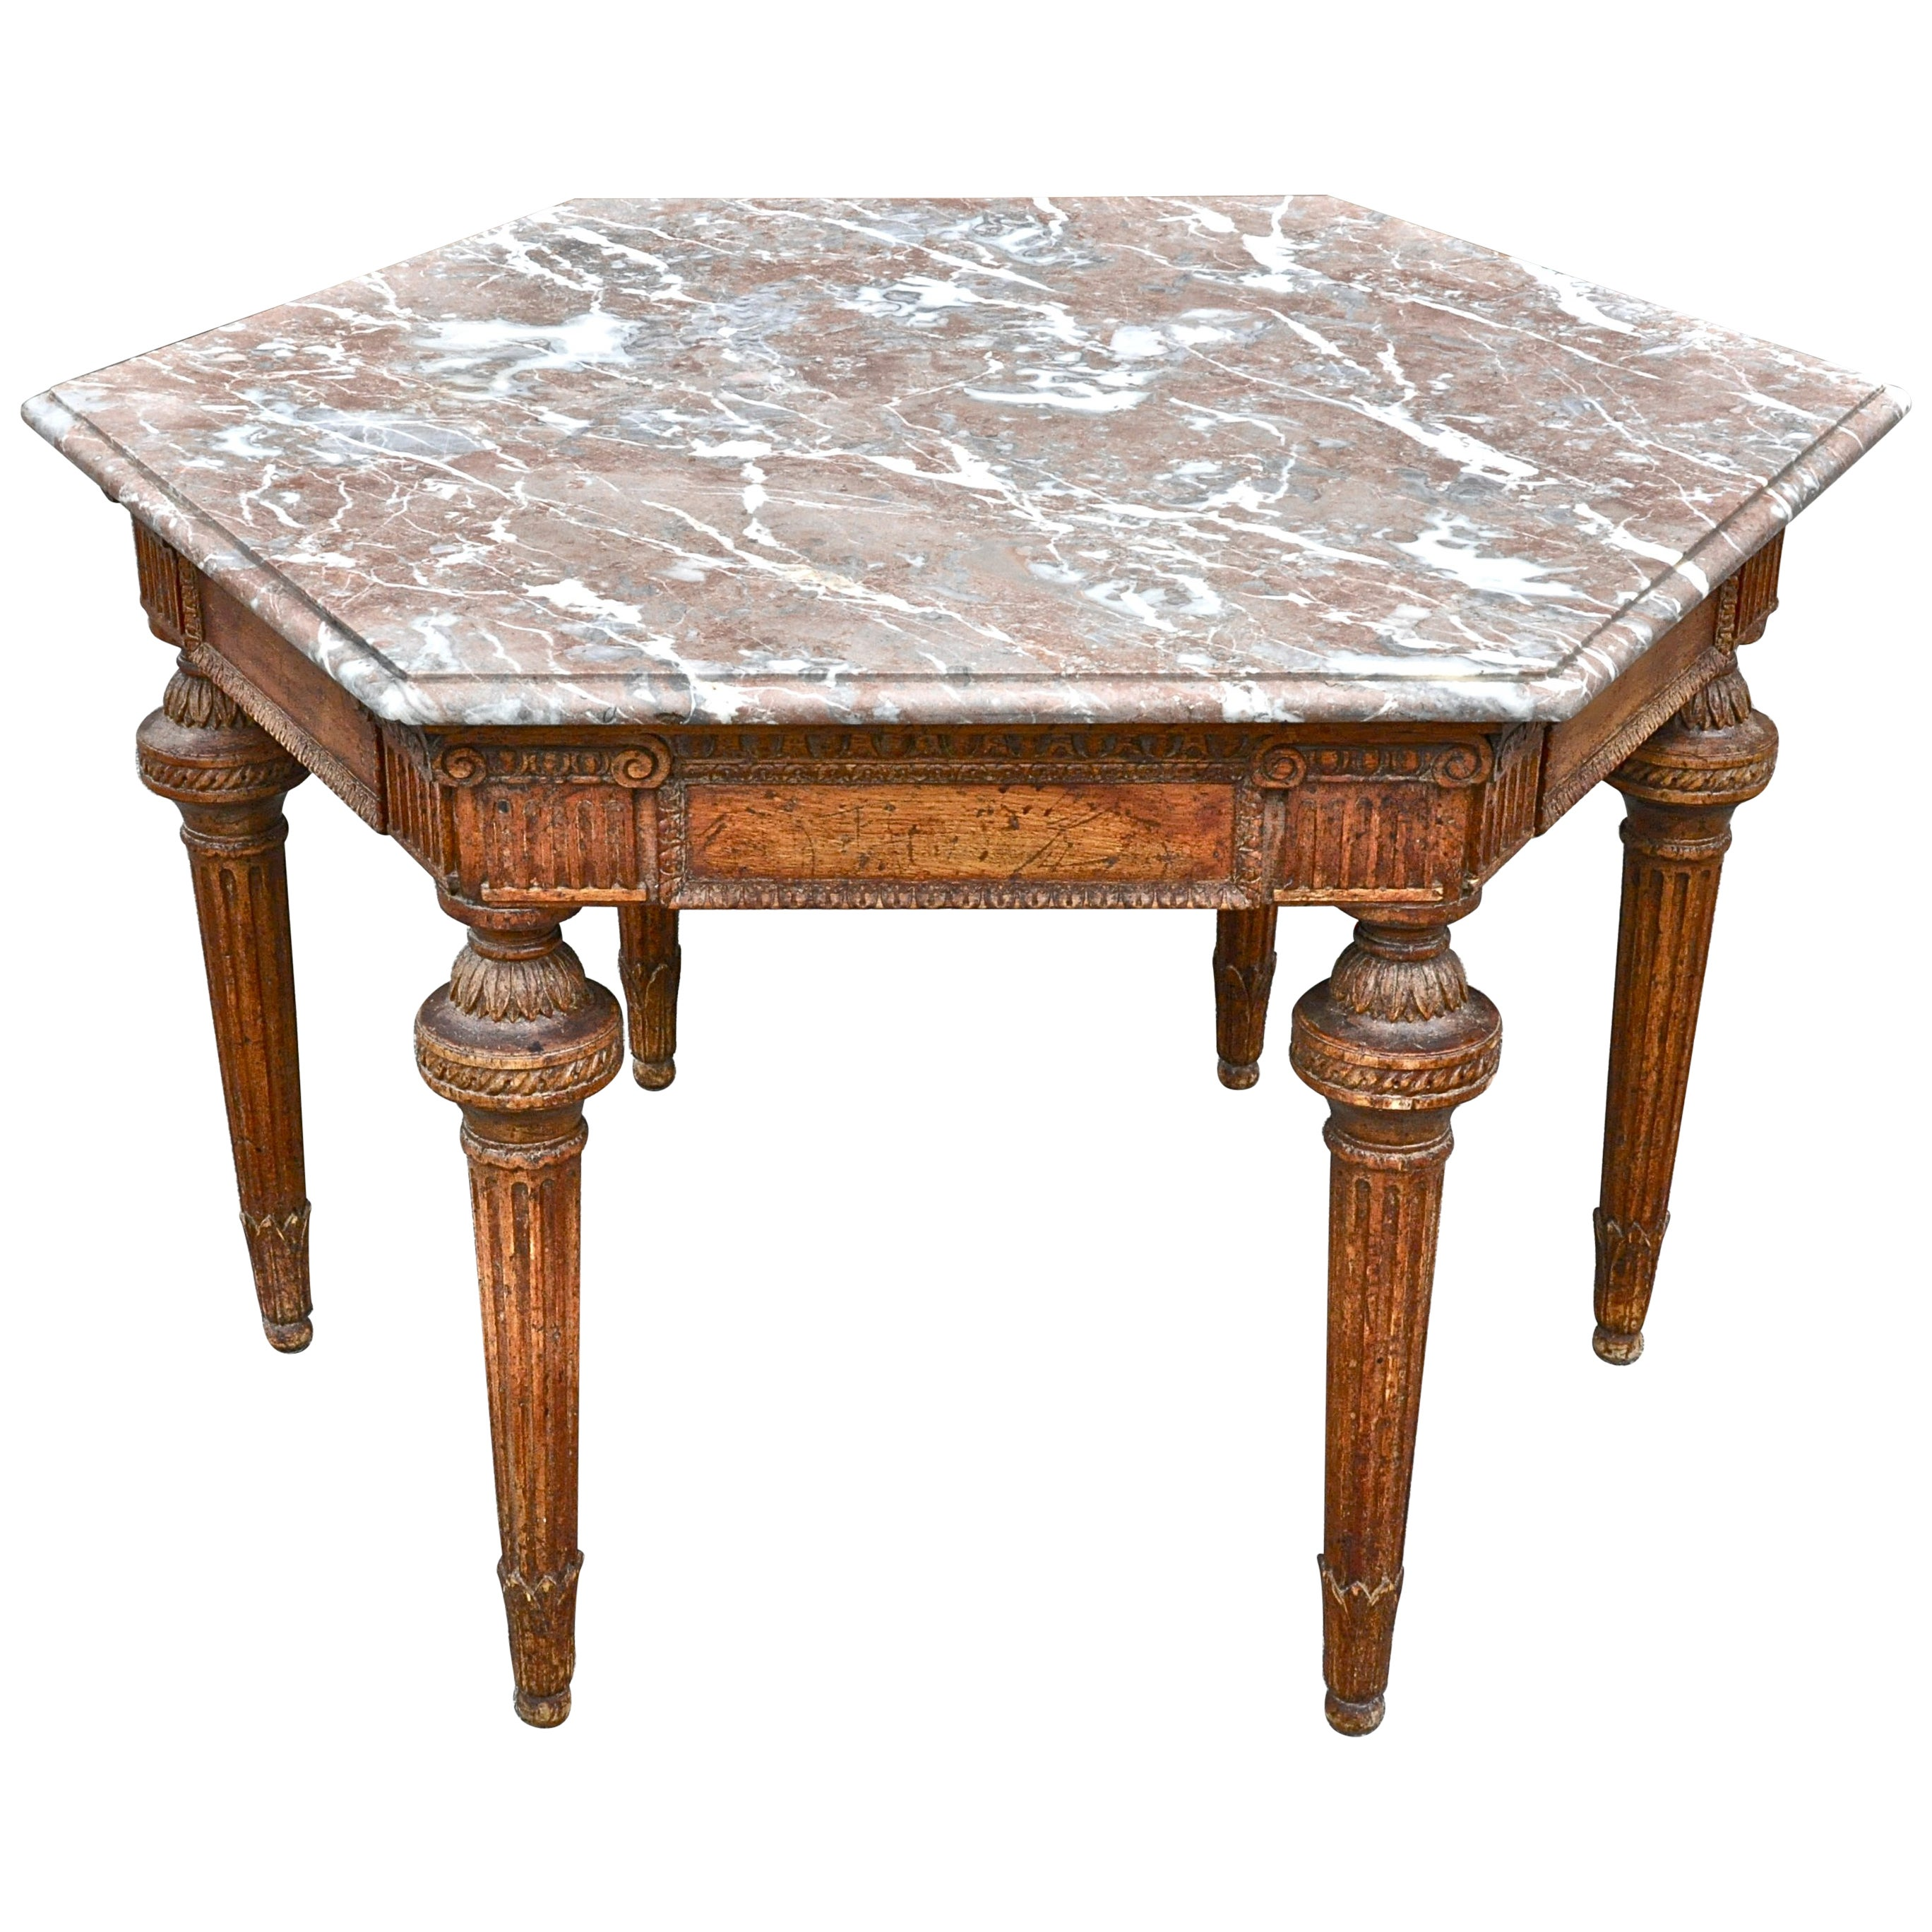 19th Century French Neoclassical Hexagonal Centre Table with Marble Top